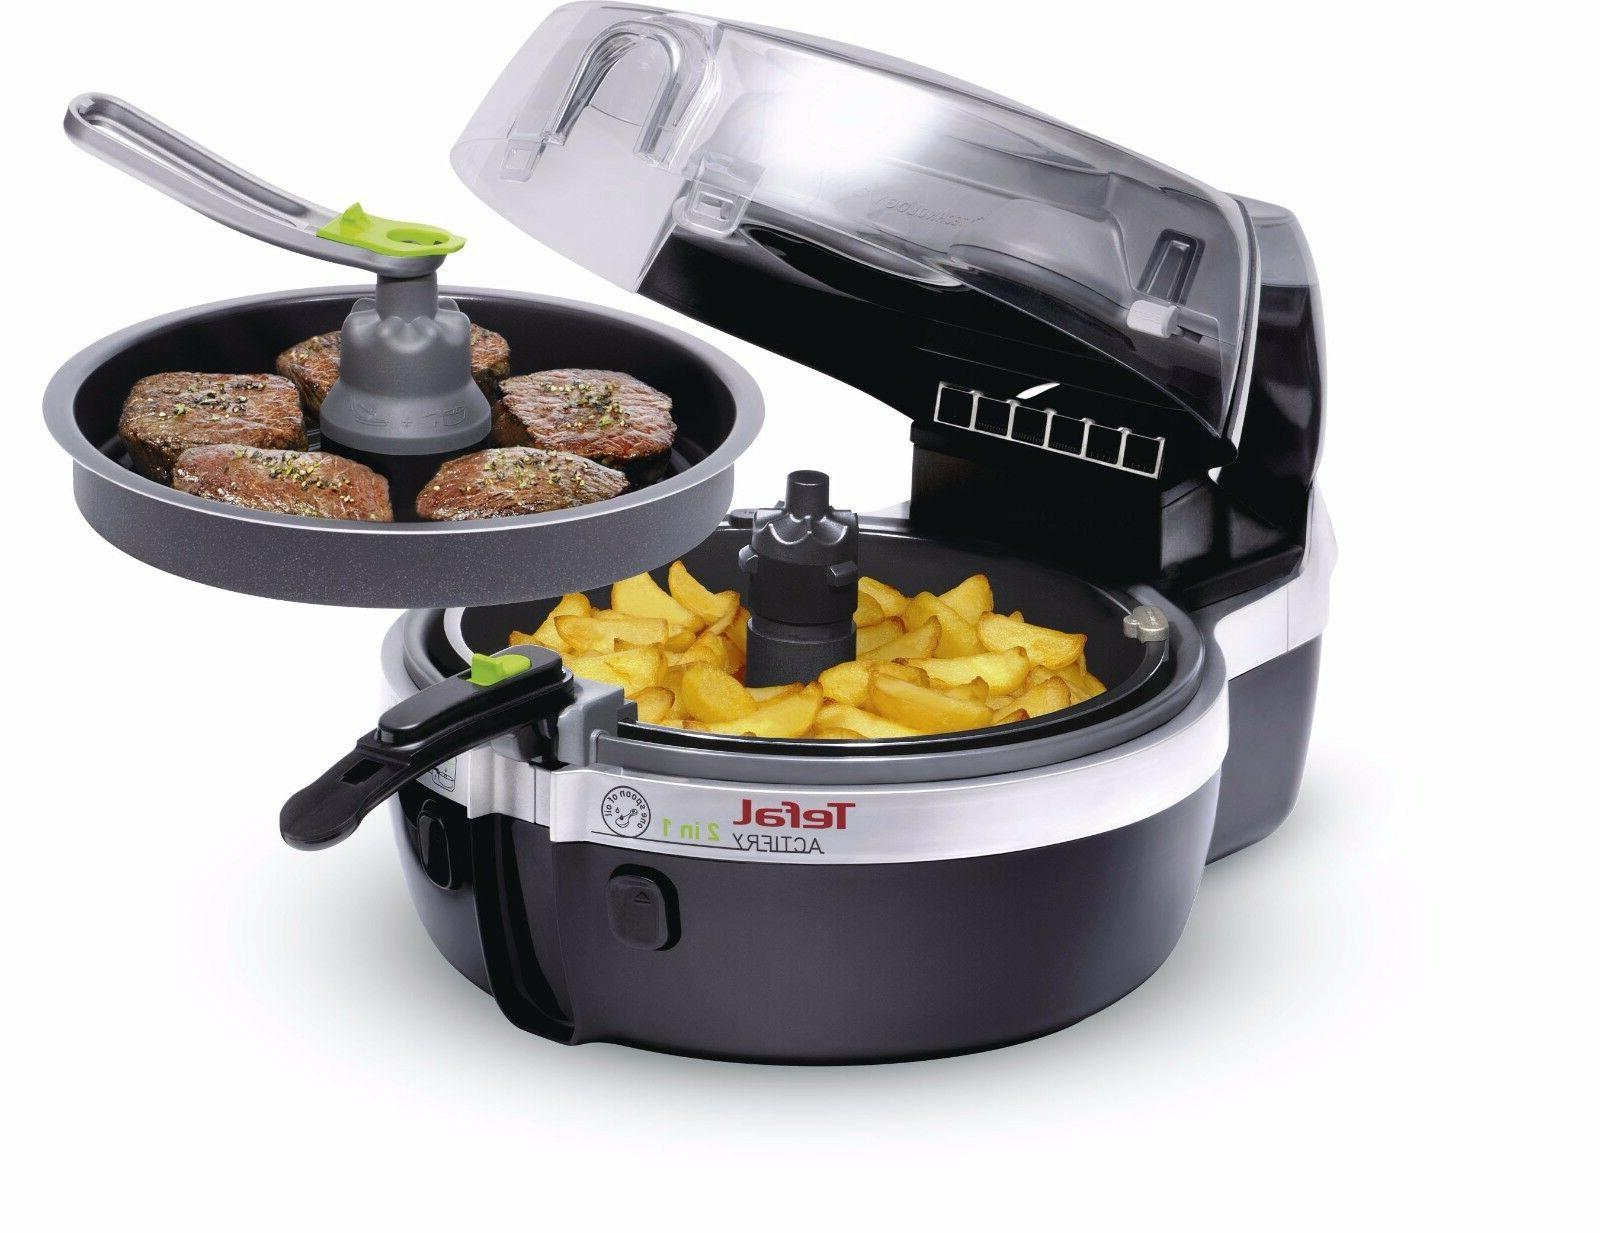 T-fal ActiFry 2 In 1 Hot Air Electric Fryer - Brand New in t